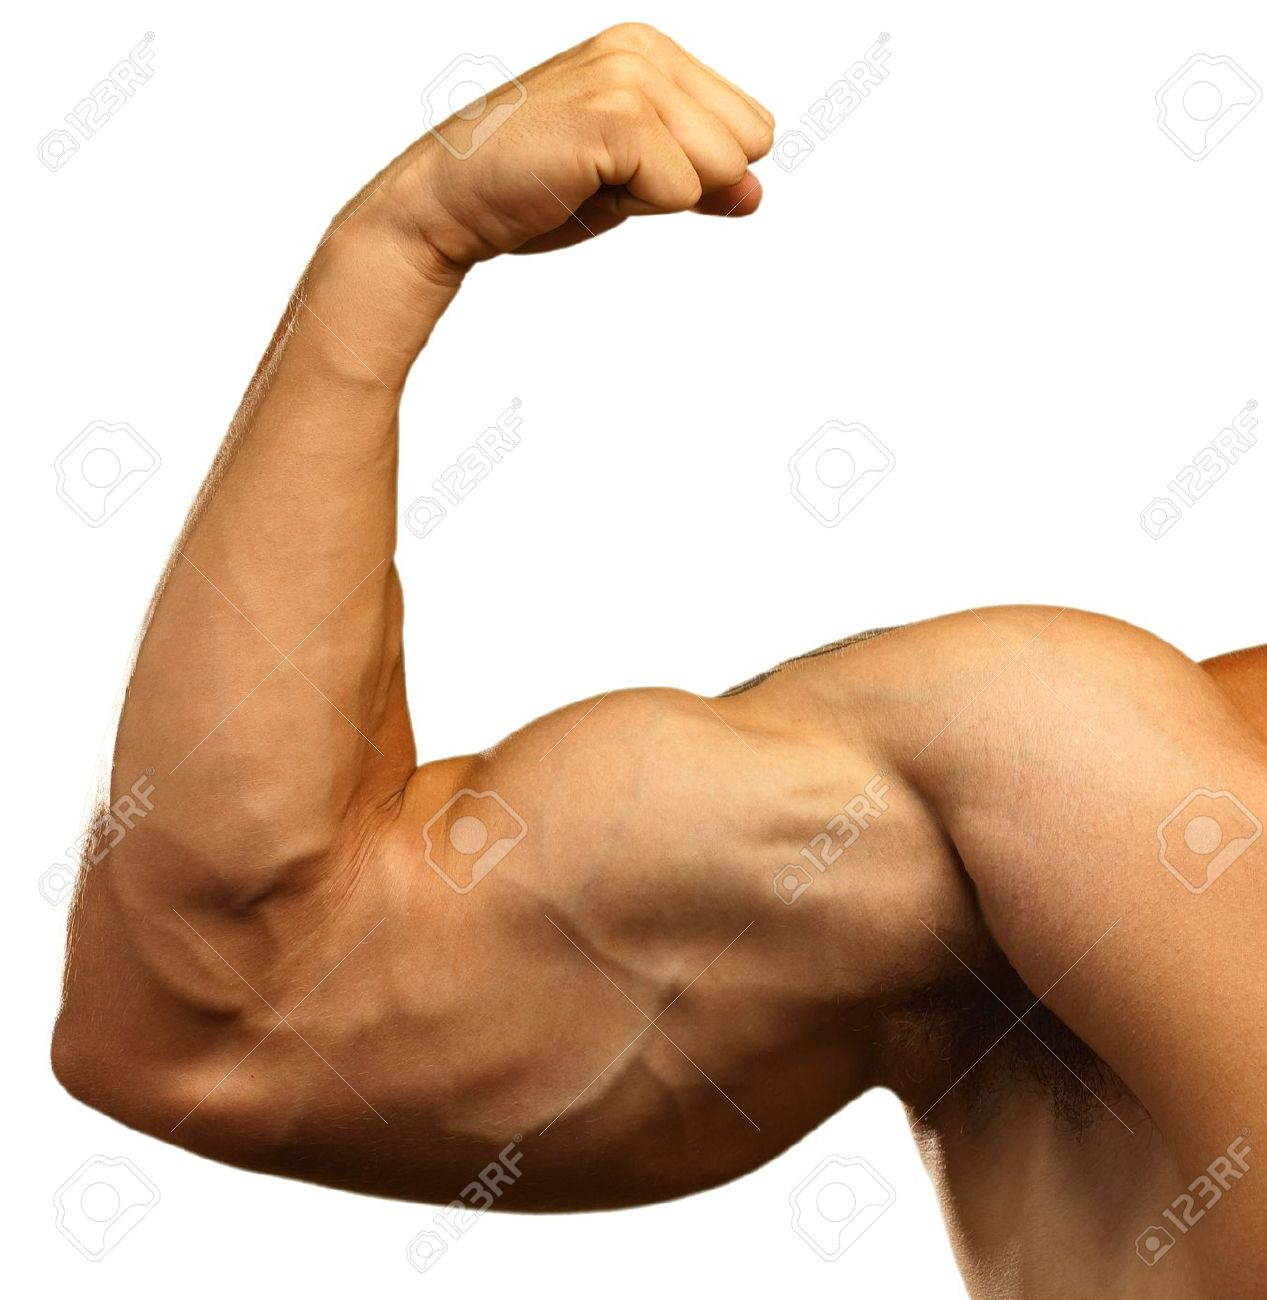 Muscle Arm PNG HD Transparent Muscle Arm HD.PNG Images..